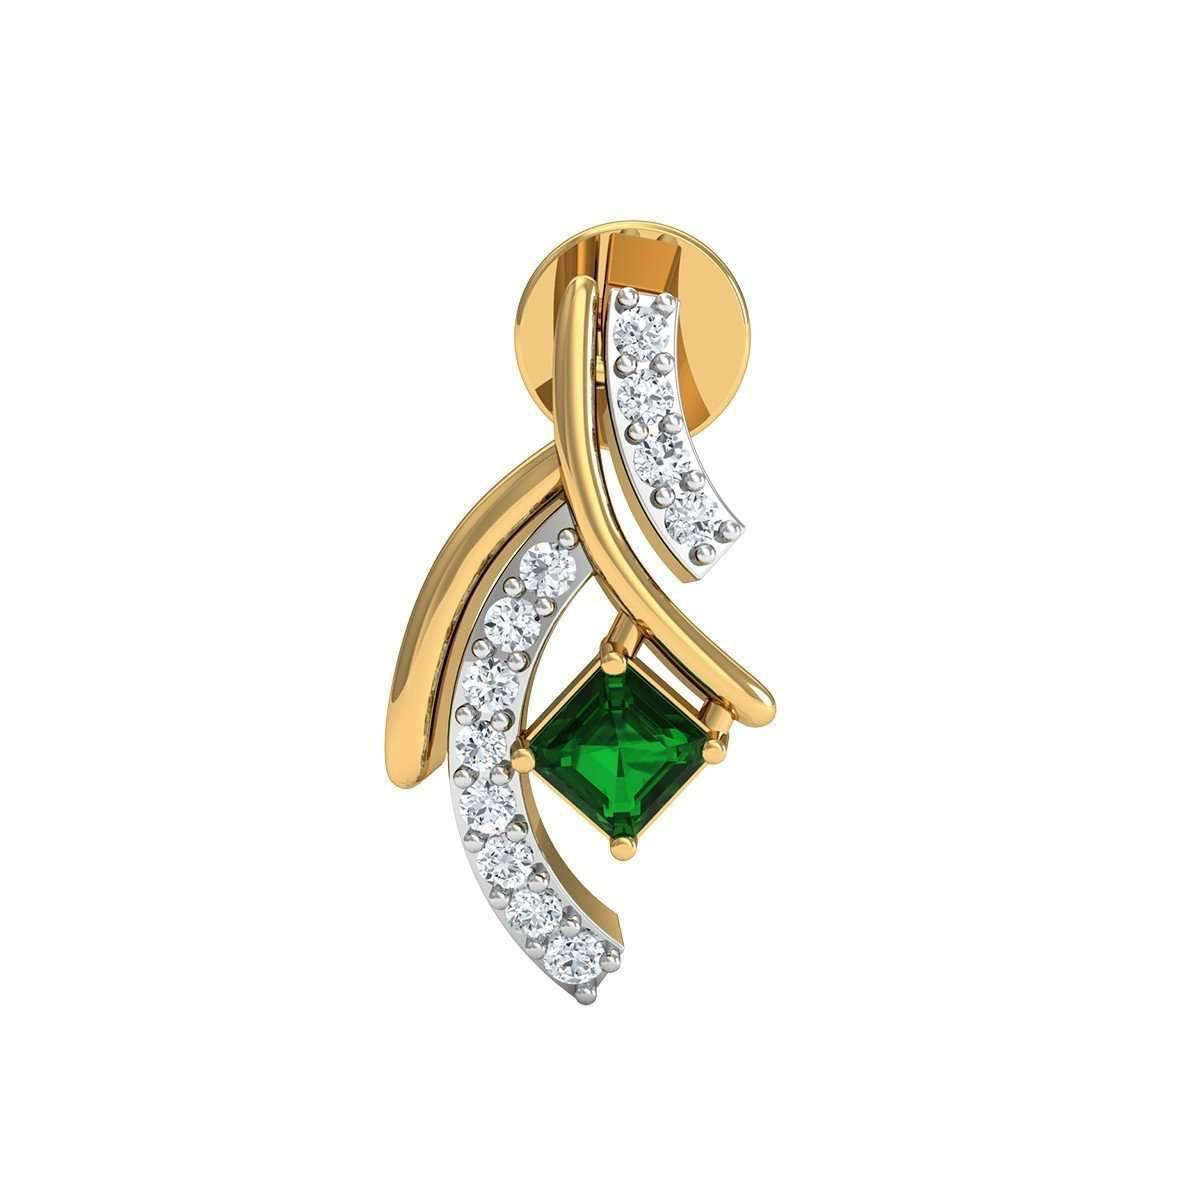 Diamoire Jewels Emerald Cut Emerald Pendant with Premium Diamonds in 10kt Yellow Gold SXKXK4dSX